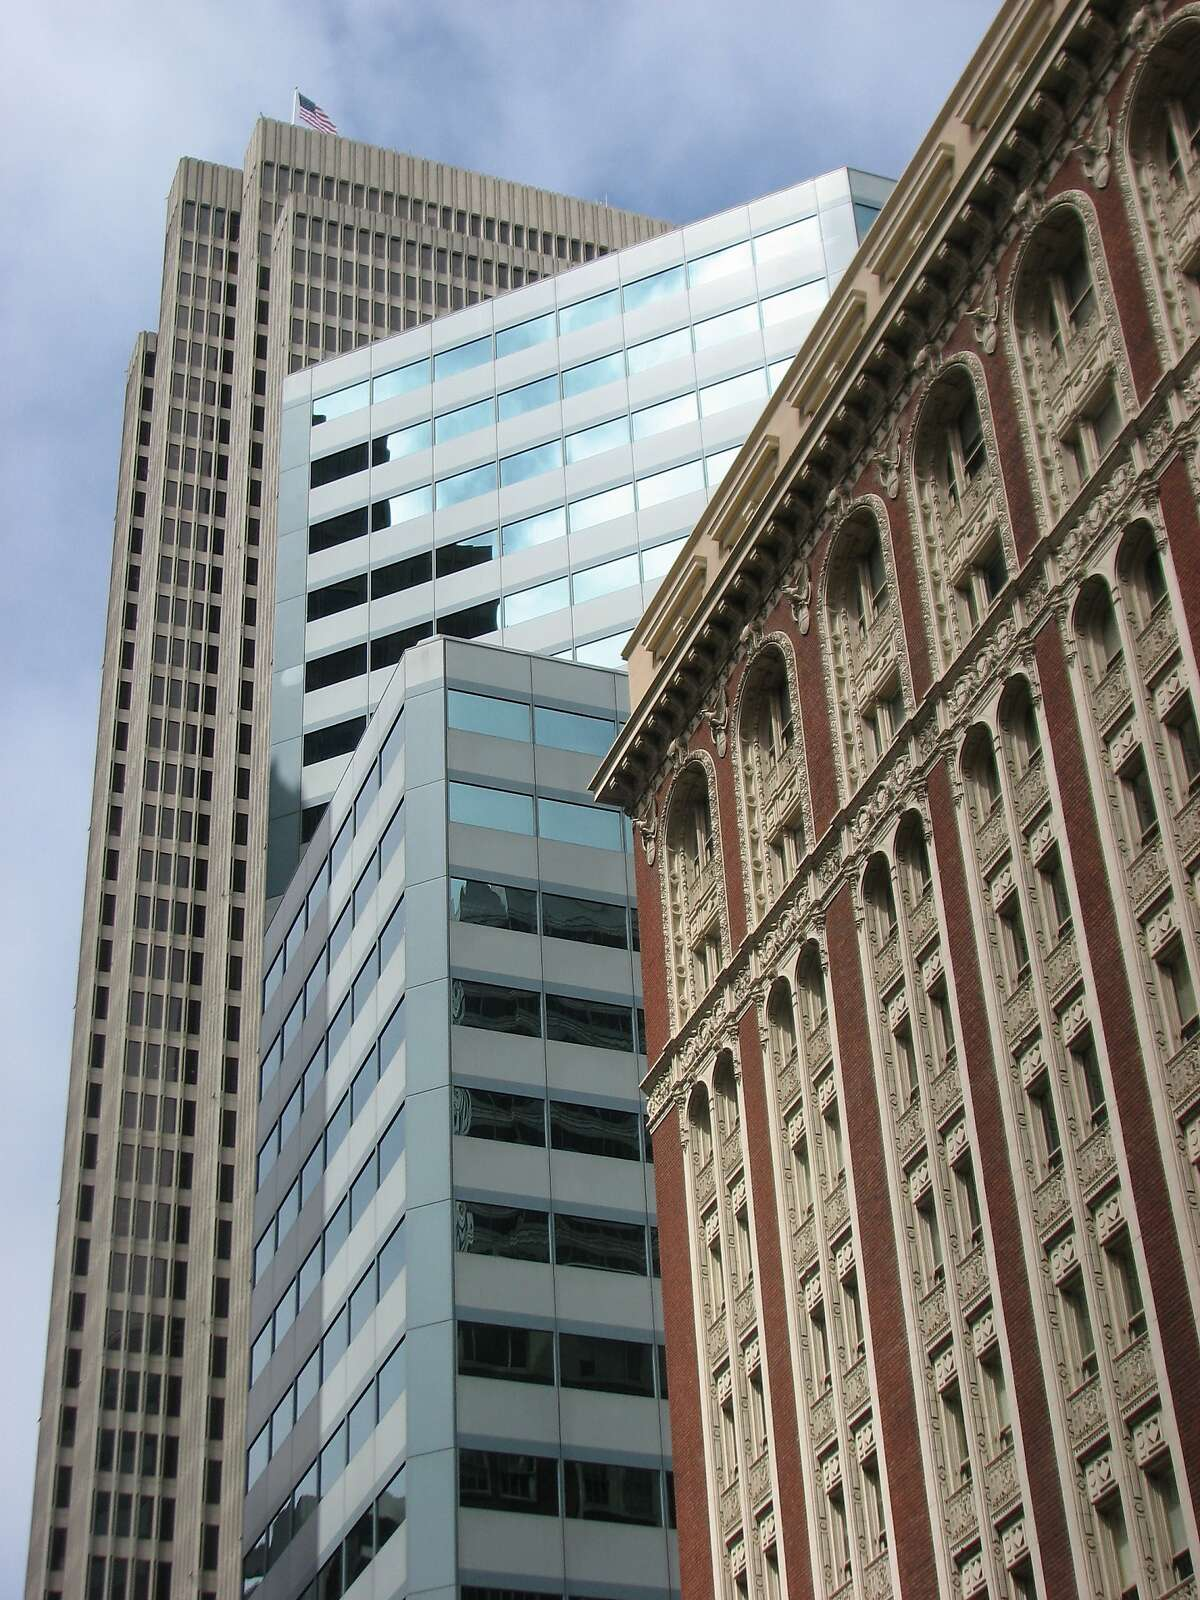 353 Sacramento is an icy metal tower in San Francisco's financial district -- an odd fit, but one that wears well with age.